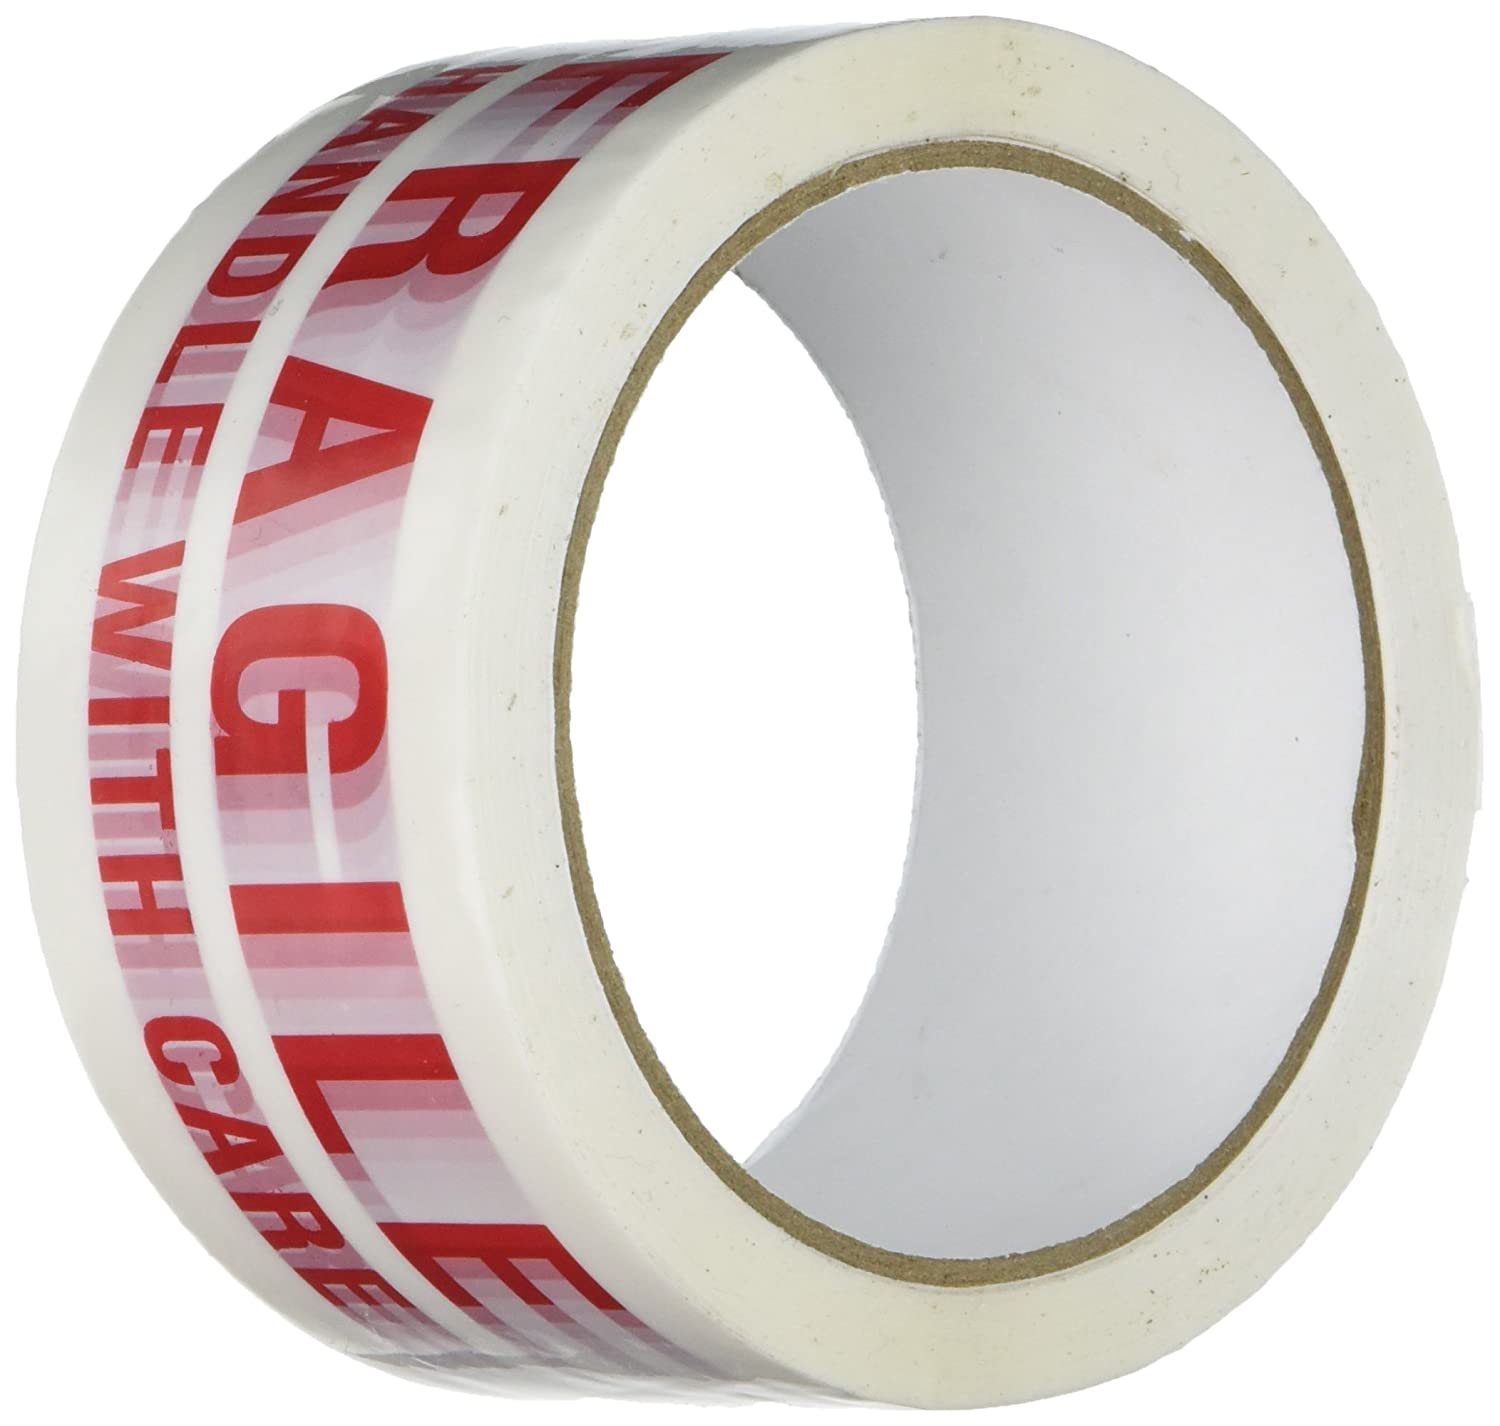 TapeCase 150SP-12 Printed White Carton Sealing Tape with Red Lettering -'Fragile Handle w/care' - 2' x 55yds (1 Roll)